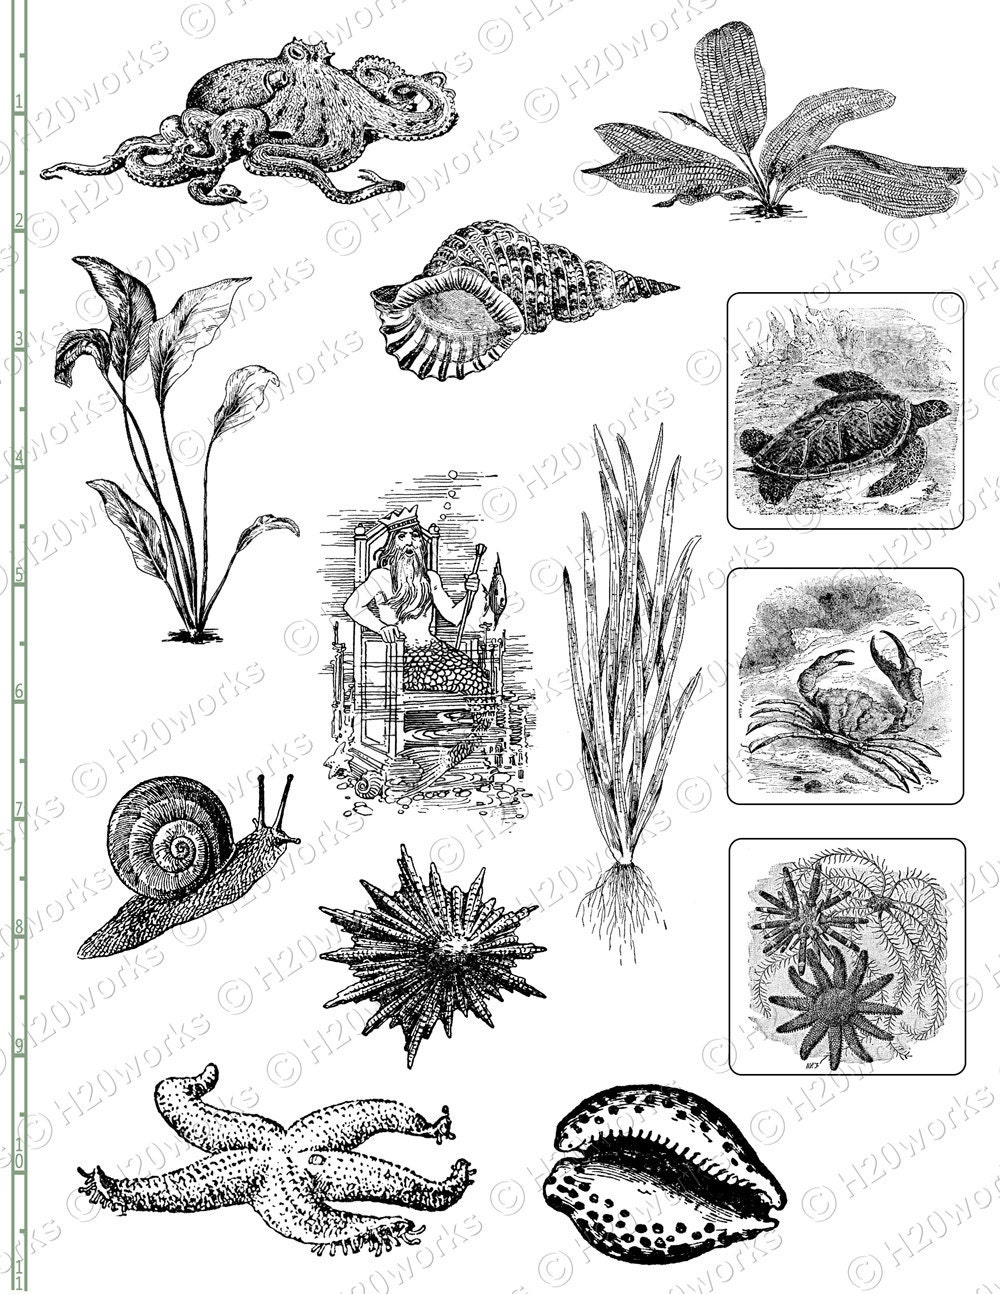 sea life sketches marine life drawings black and white